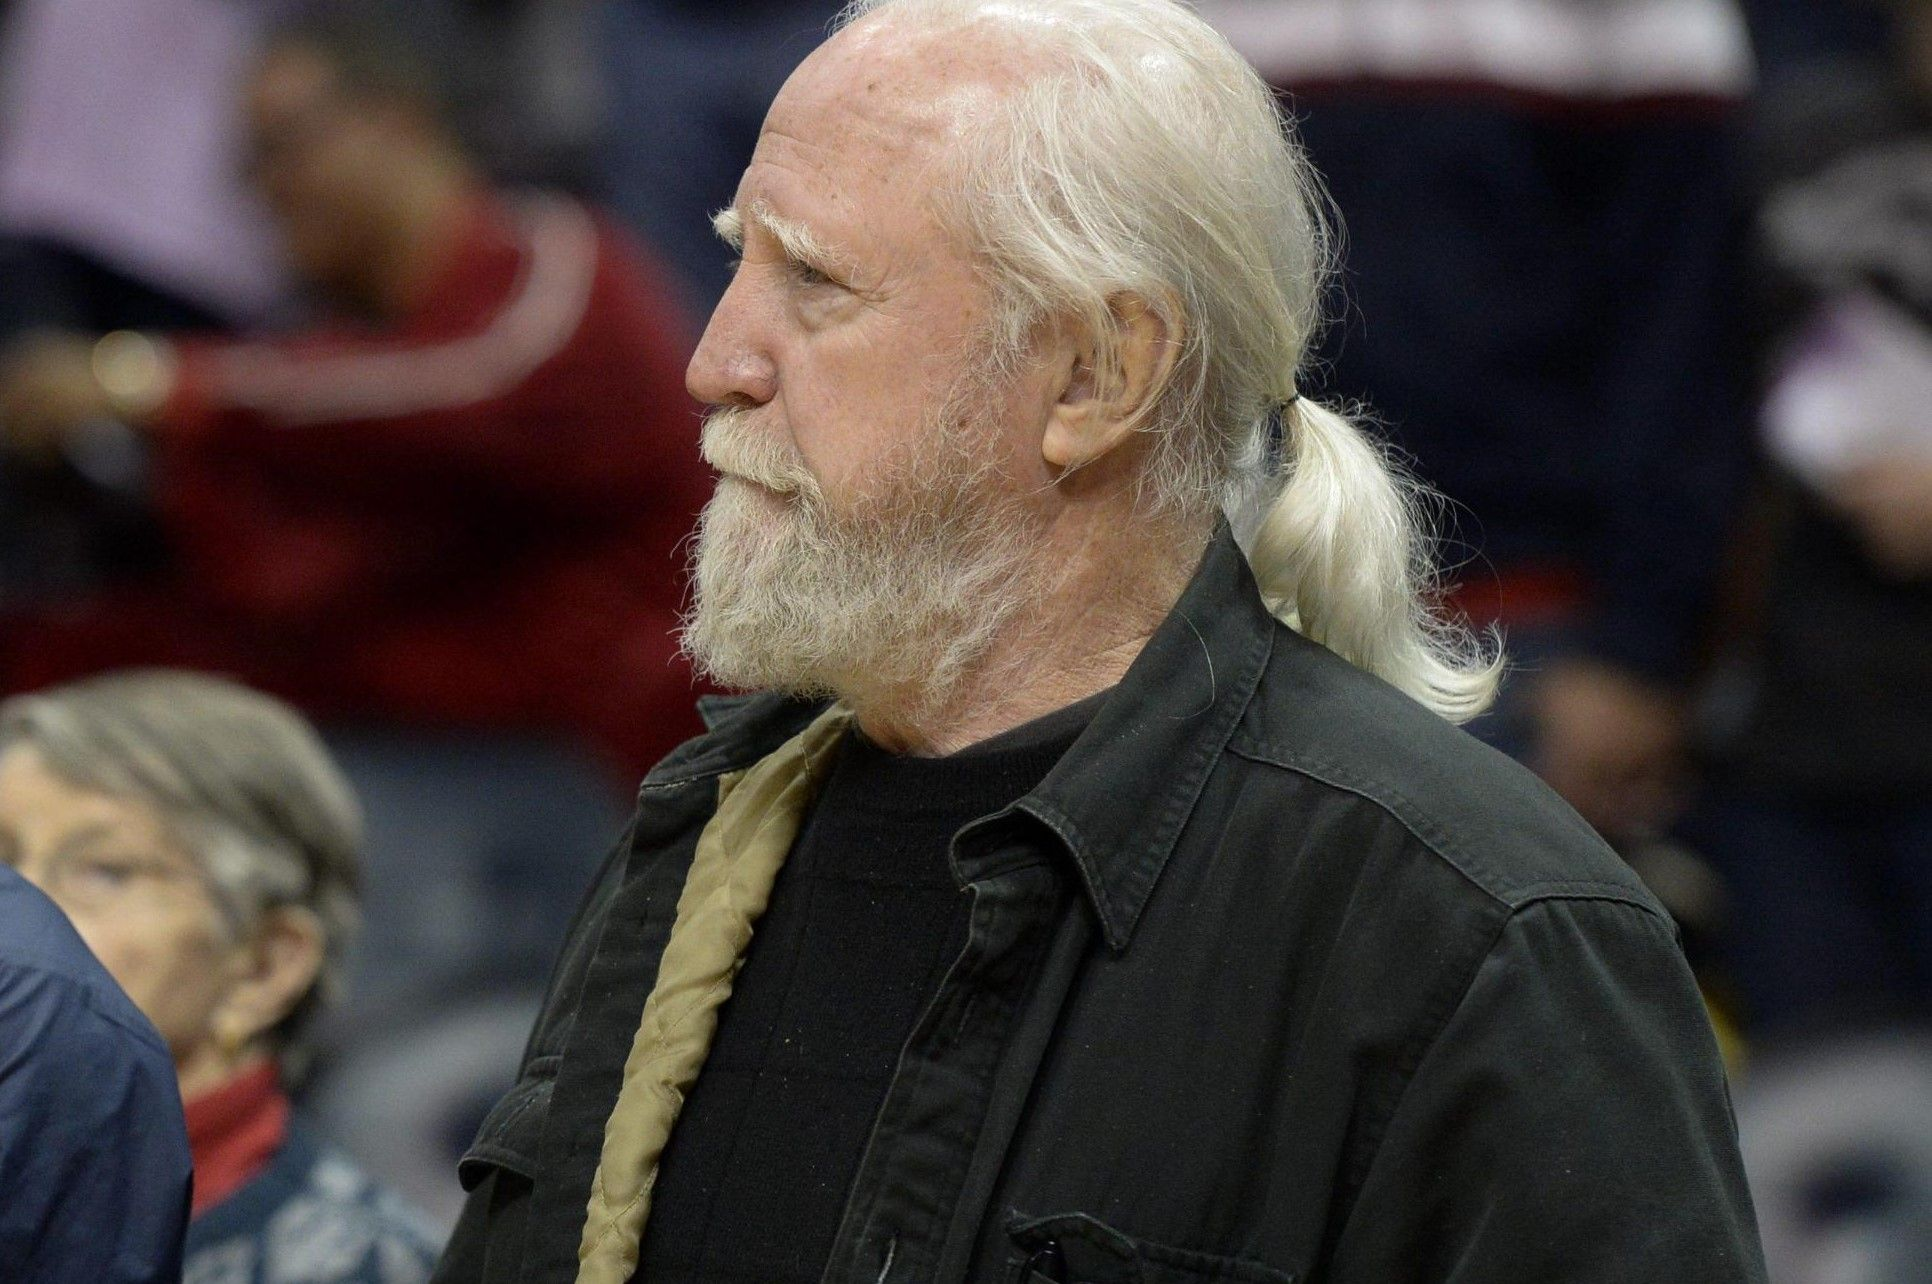 Morto Scott Wilson, l'attore di The Walking Dead aveva la leucemia